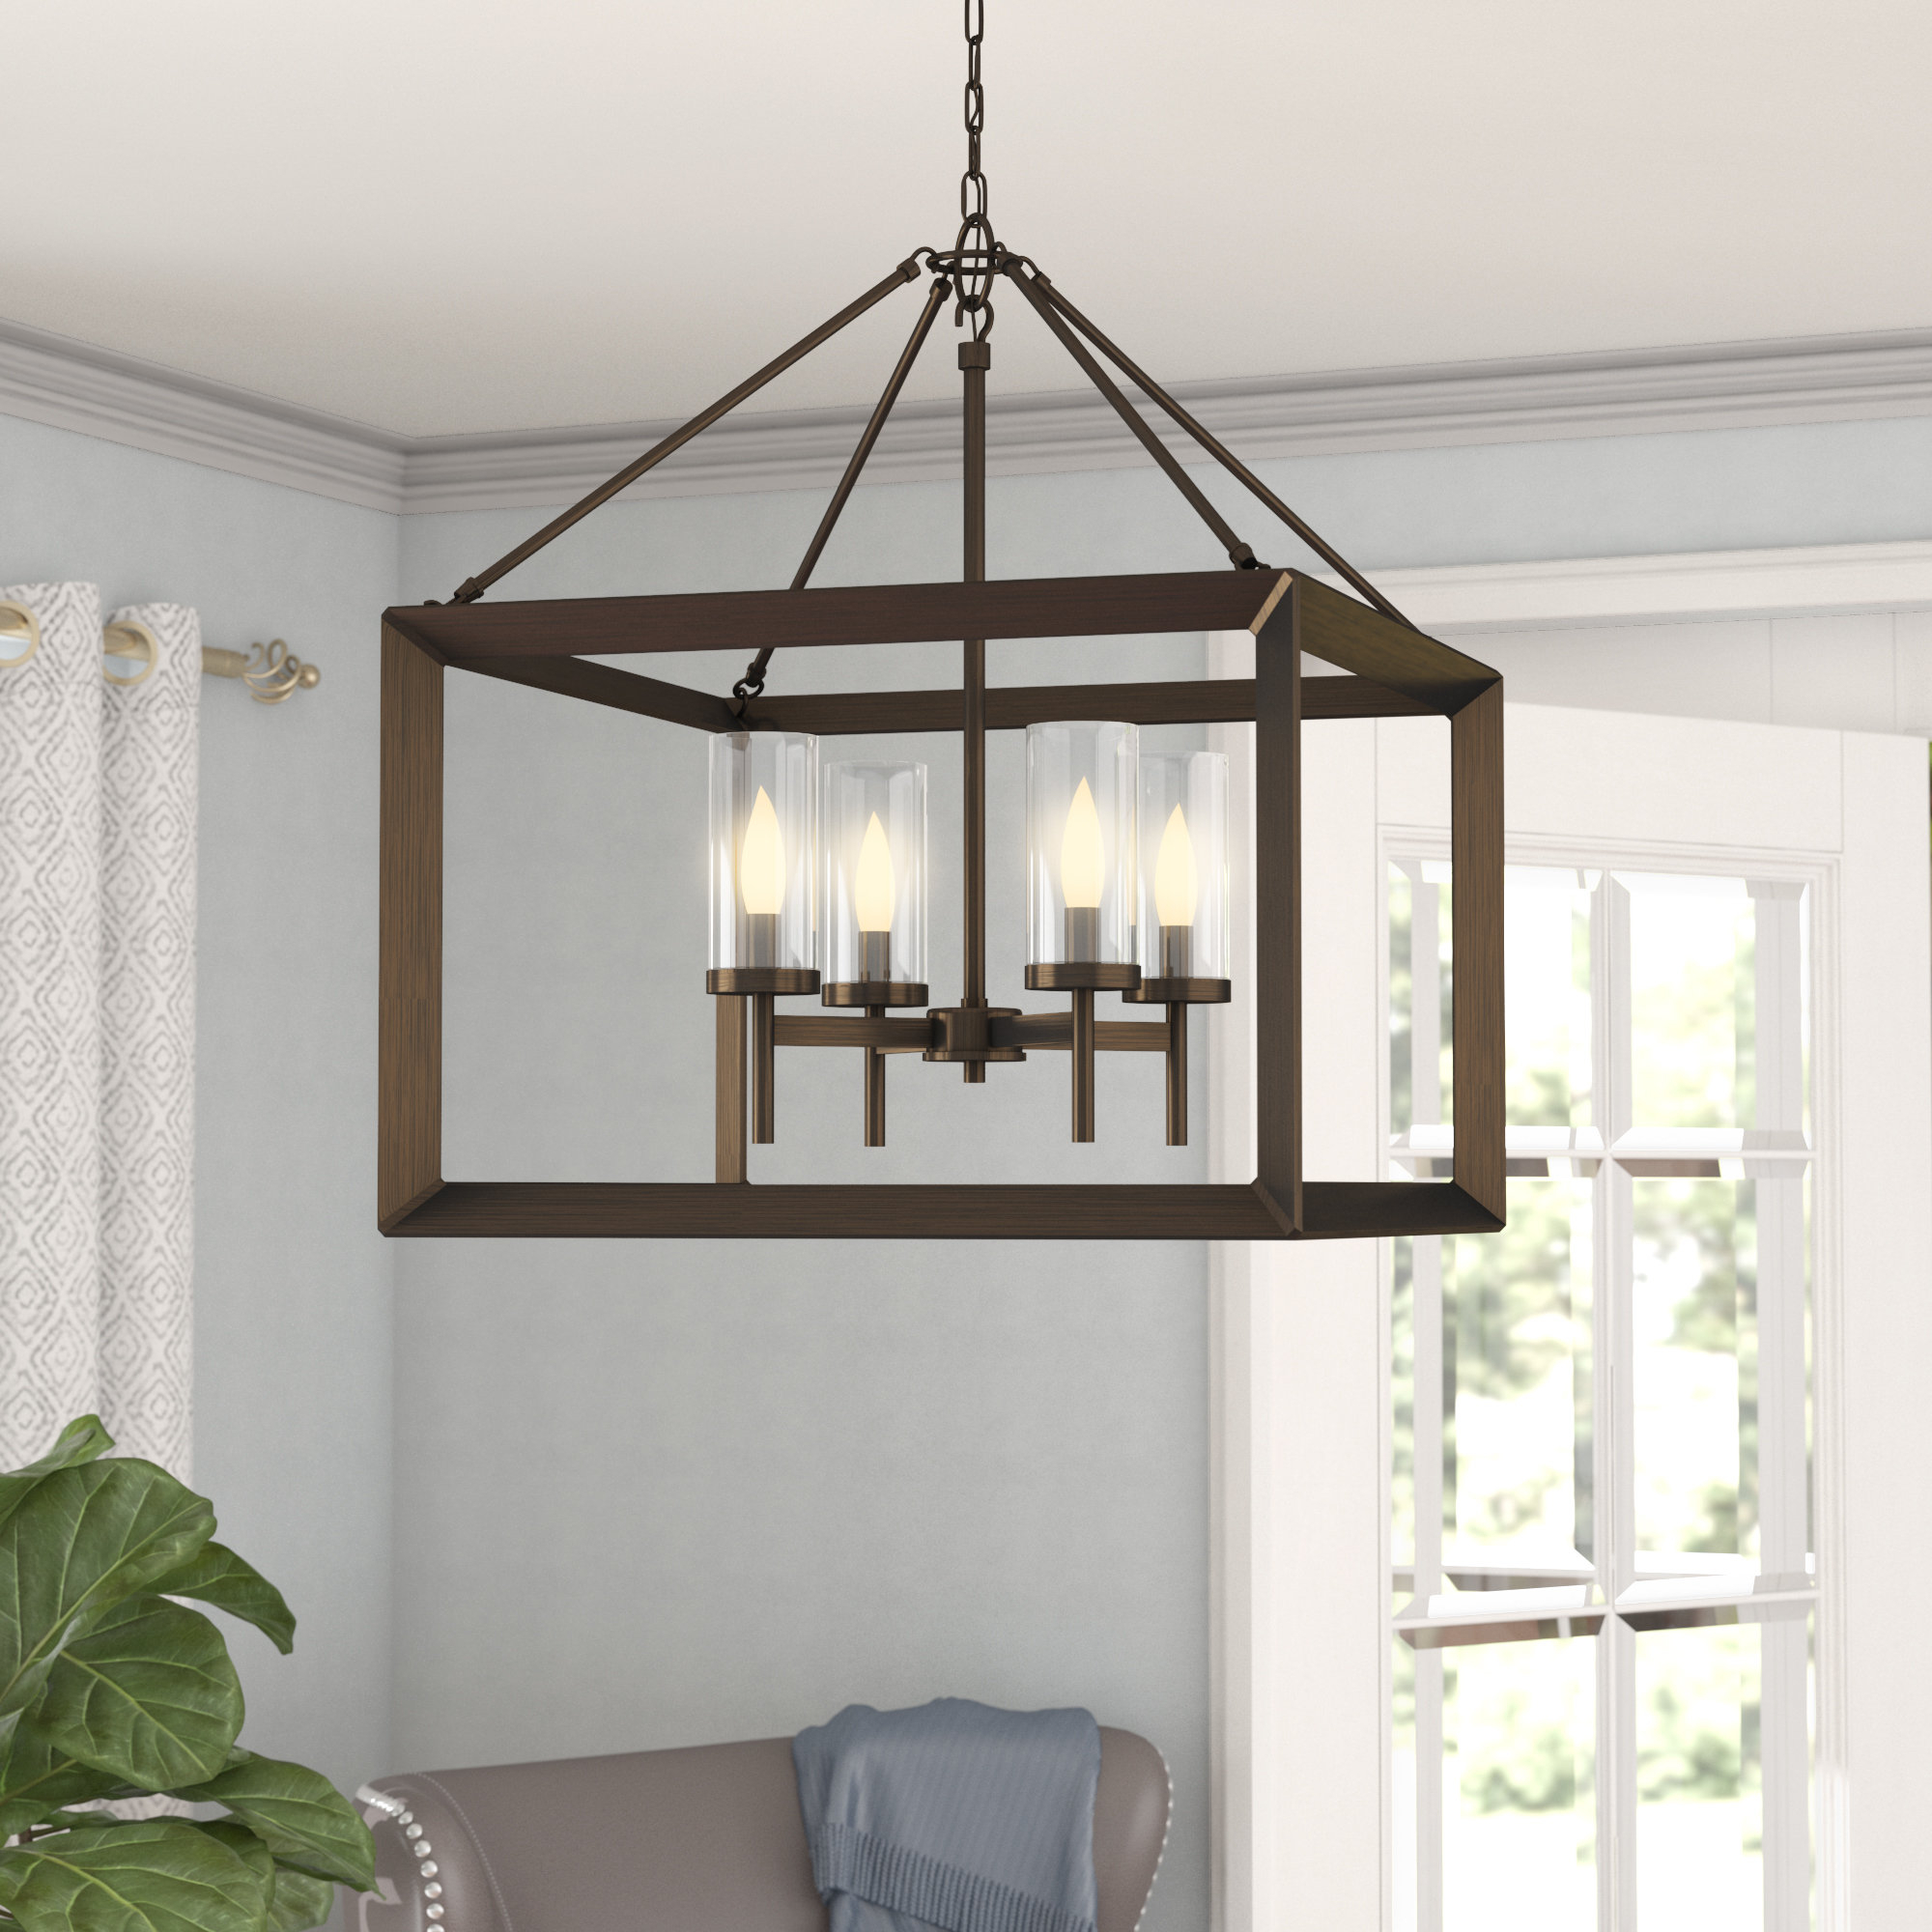 Odie 4 Light Lantern Square Pendants With Regard To Most Current Thorne 4 Light Lantern Rectangle Pendant (View 9 of 20)